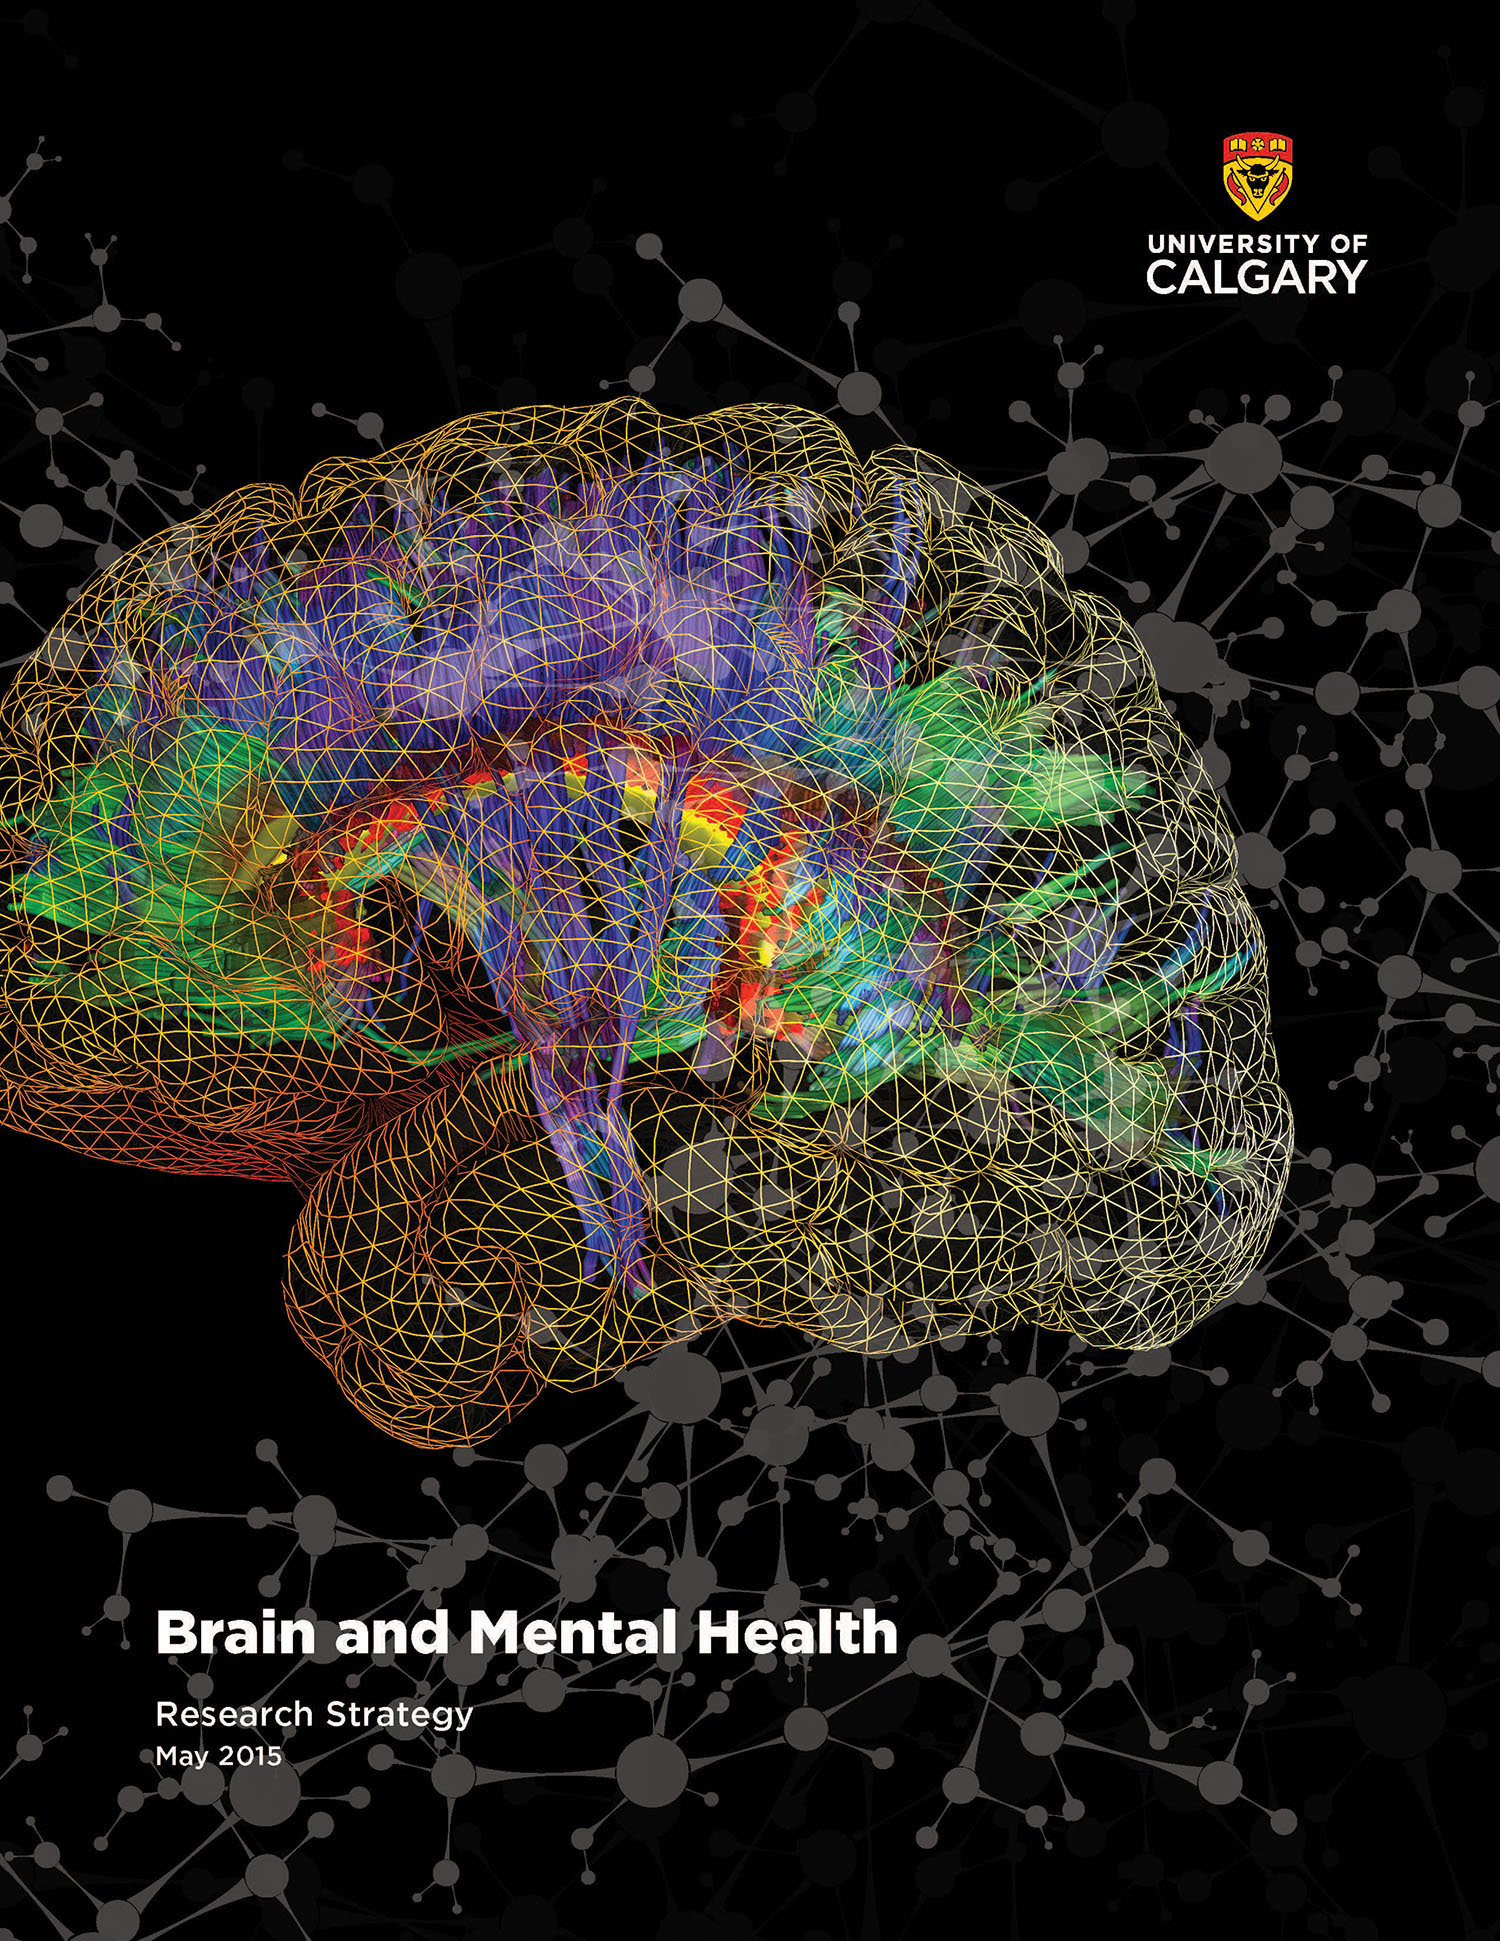 Brain and Mental Health